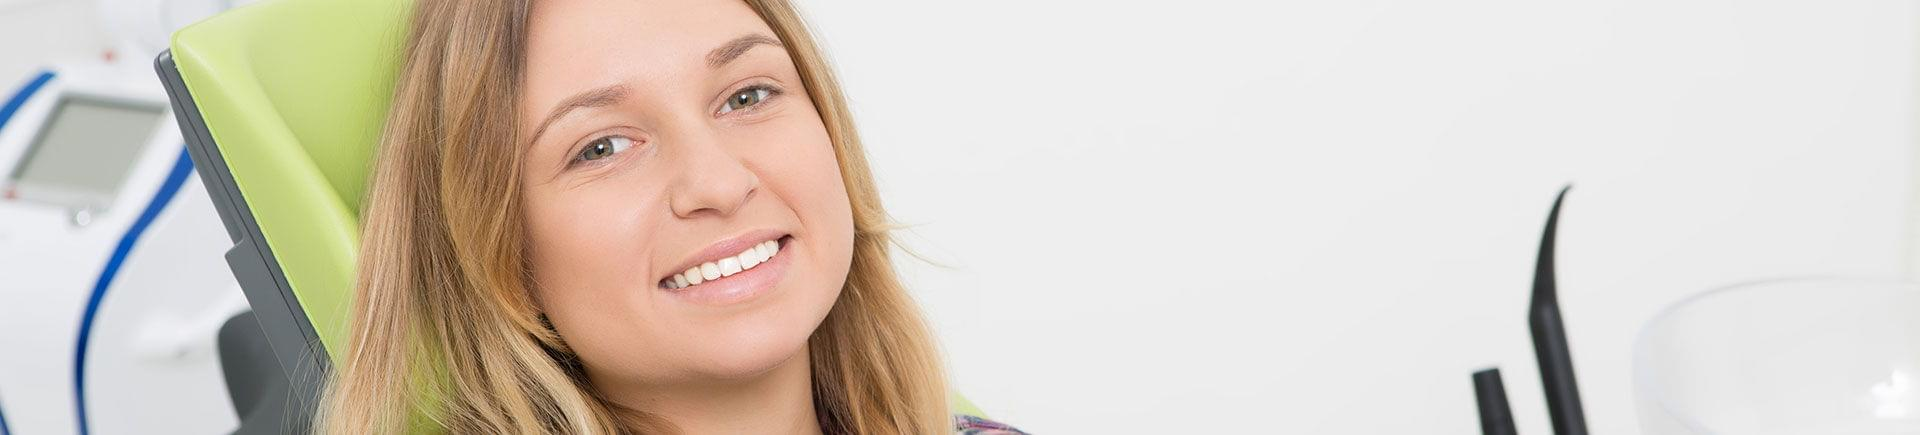 A happy young woman with a perfect smile after dental veneers treatment.